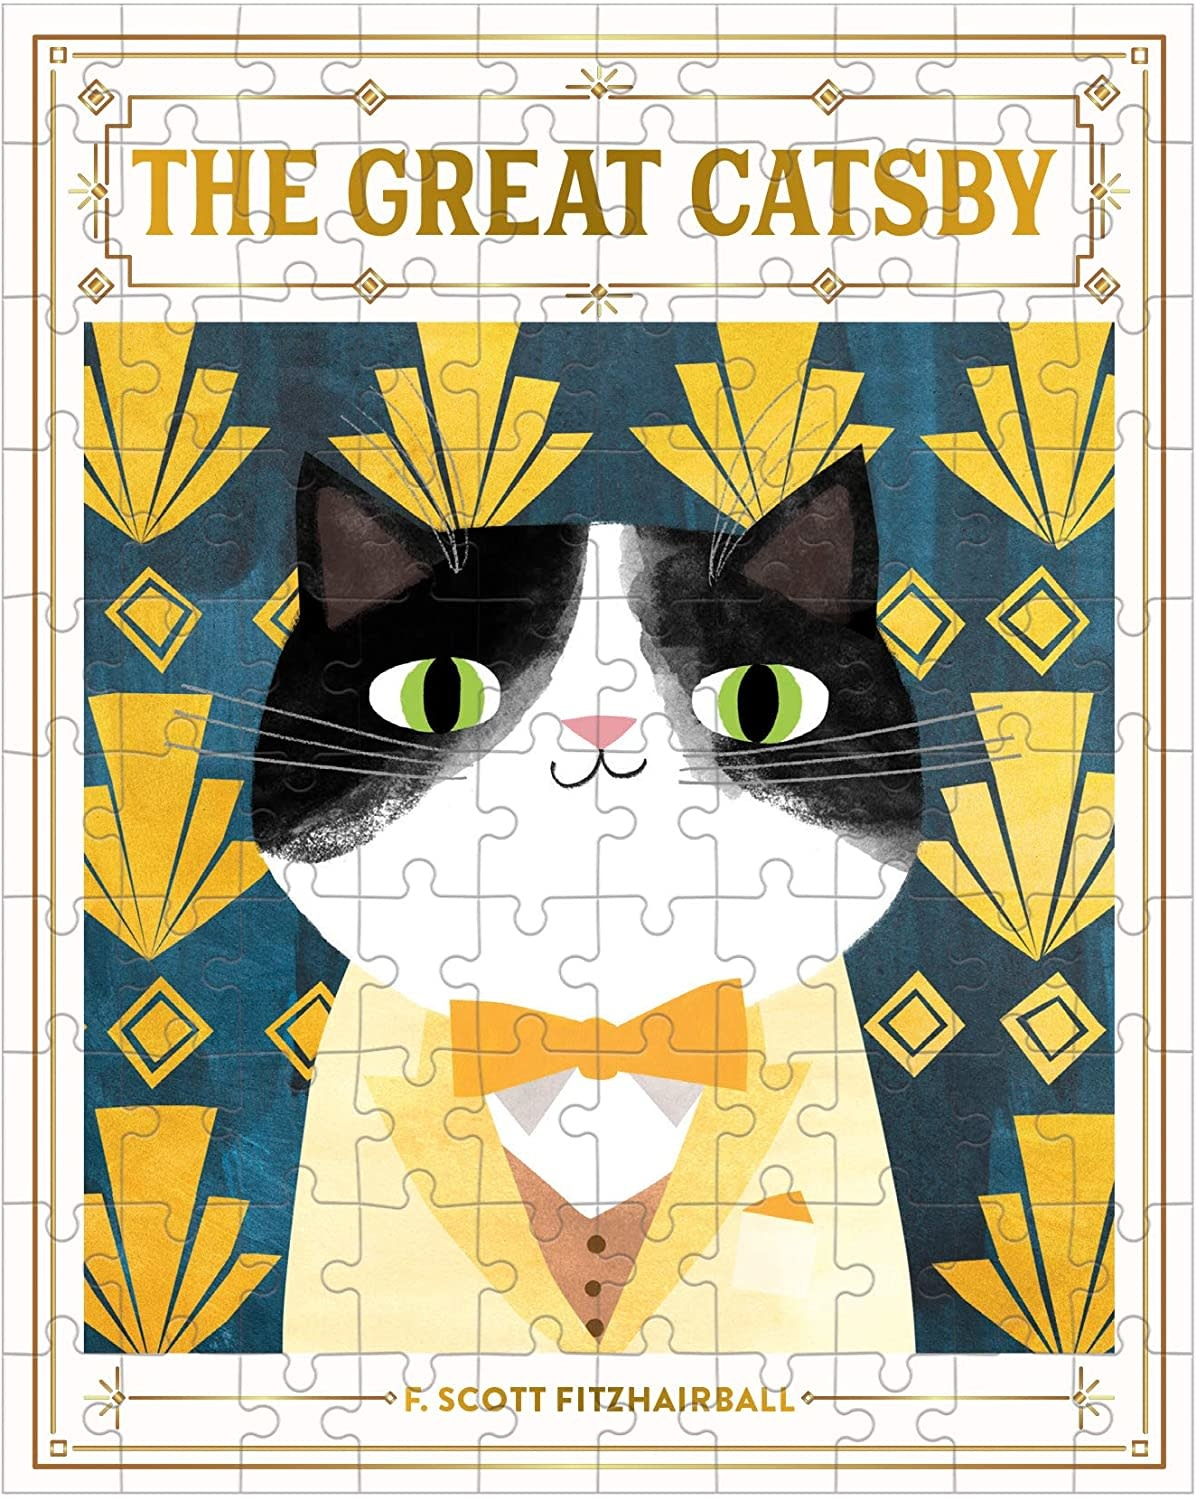 The Great Catsby 100 pc Puzzle-3